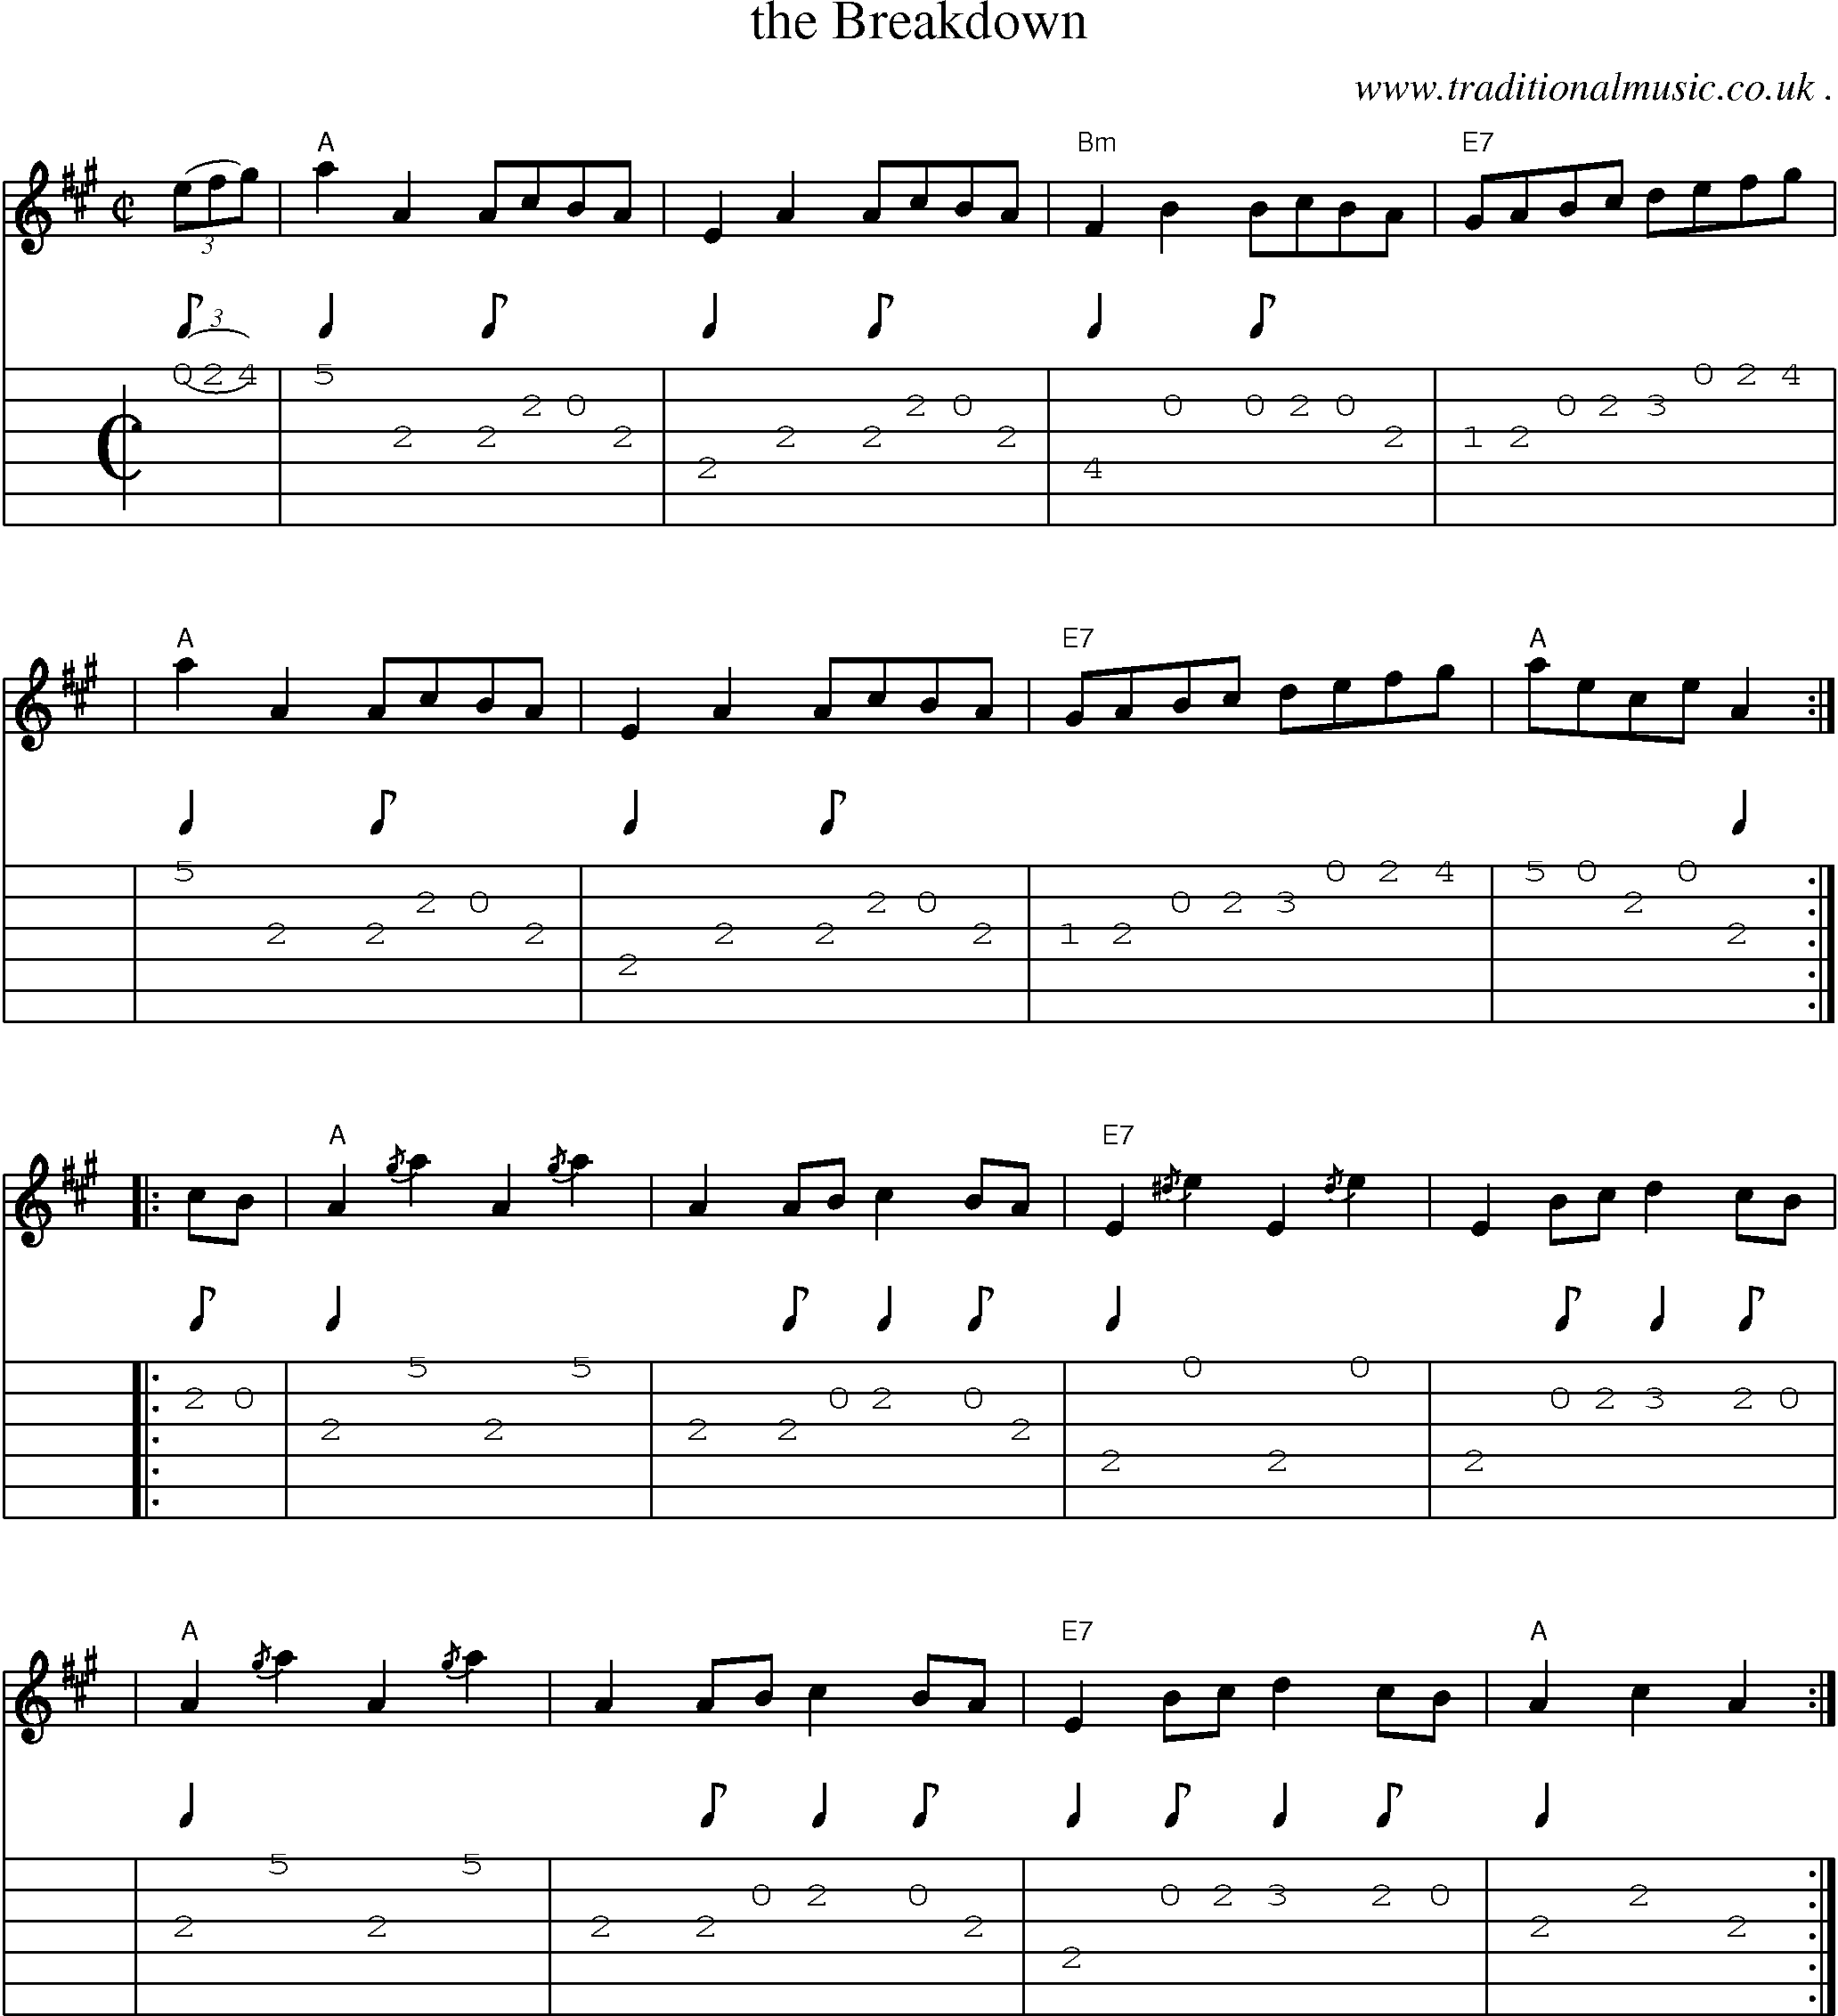 Scottish Tune Sheetmusic Midi Mp3 Guitar Chords Tabs The